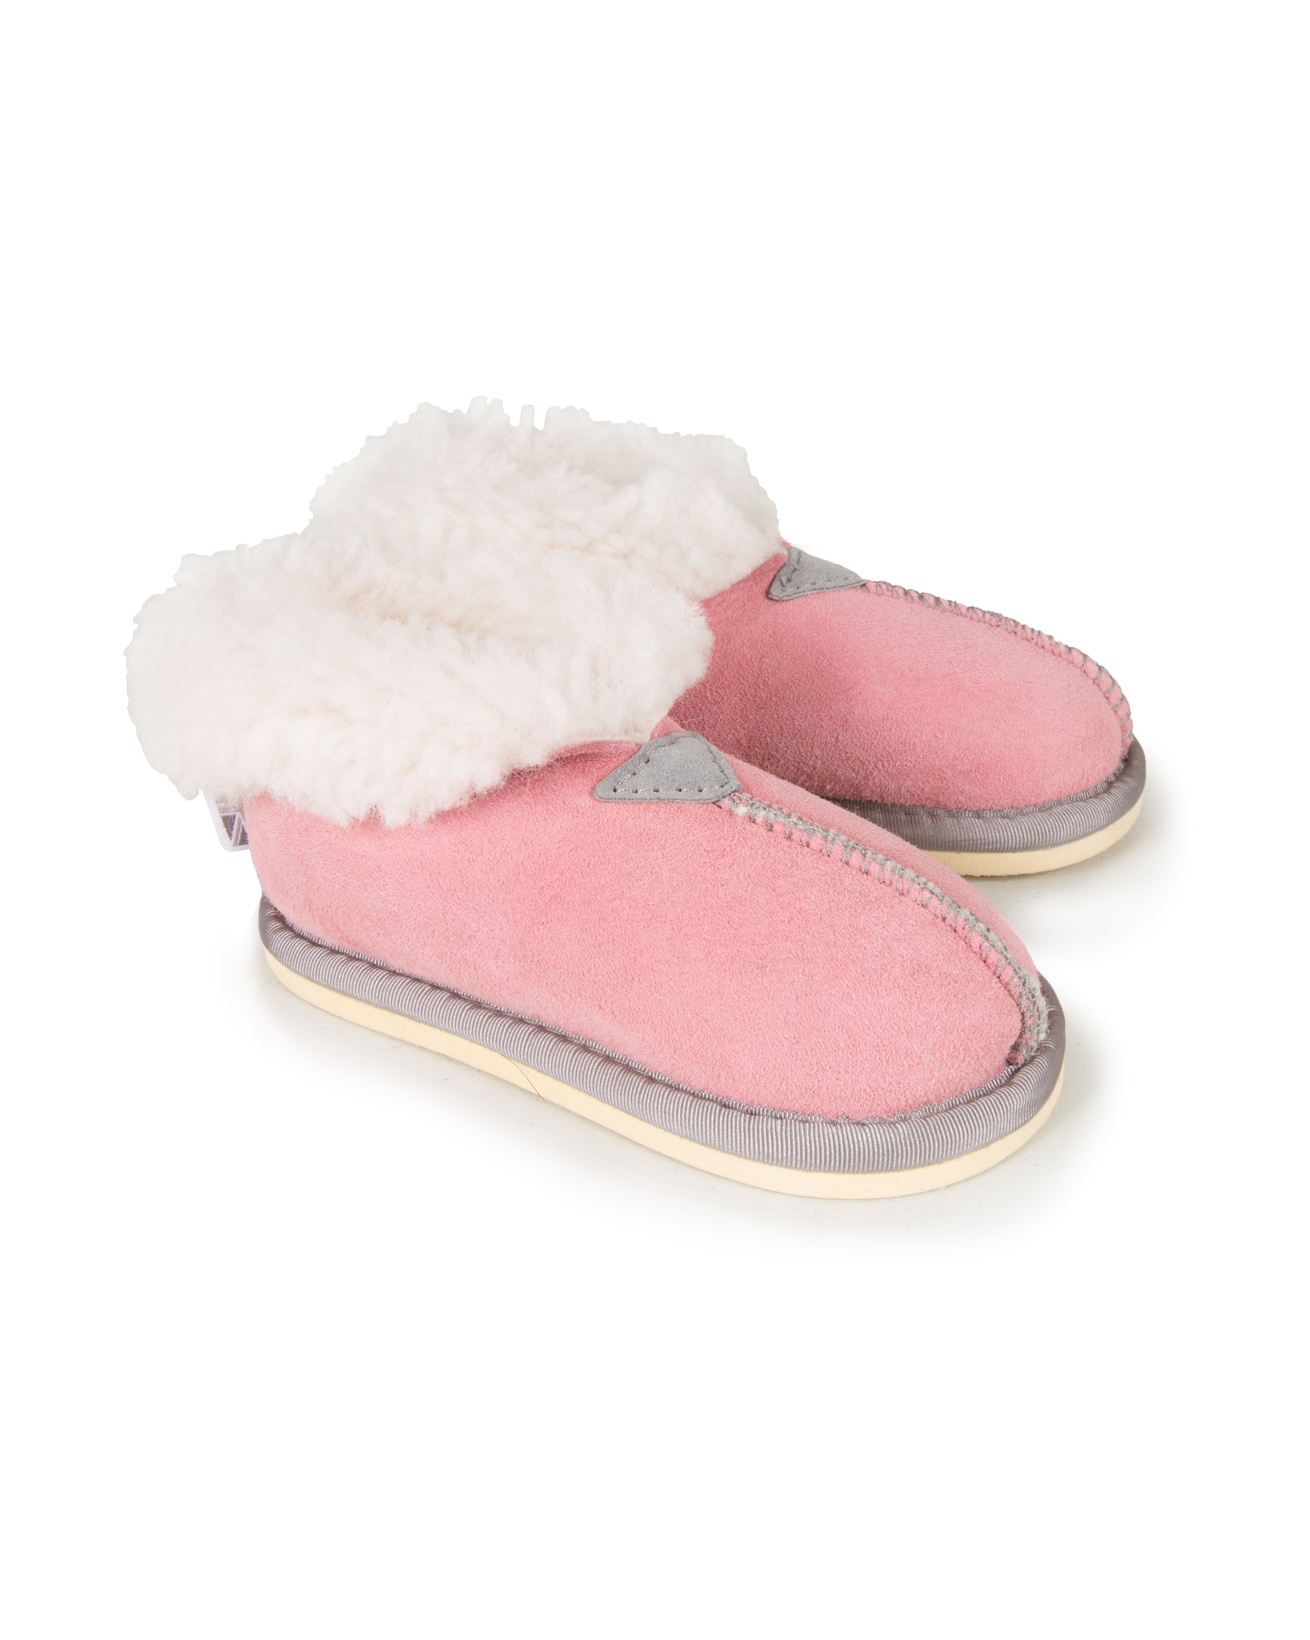 Kids Bootee Slippers - Size 5-6 - Pink - 1178